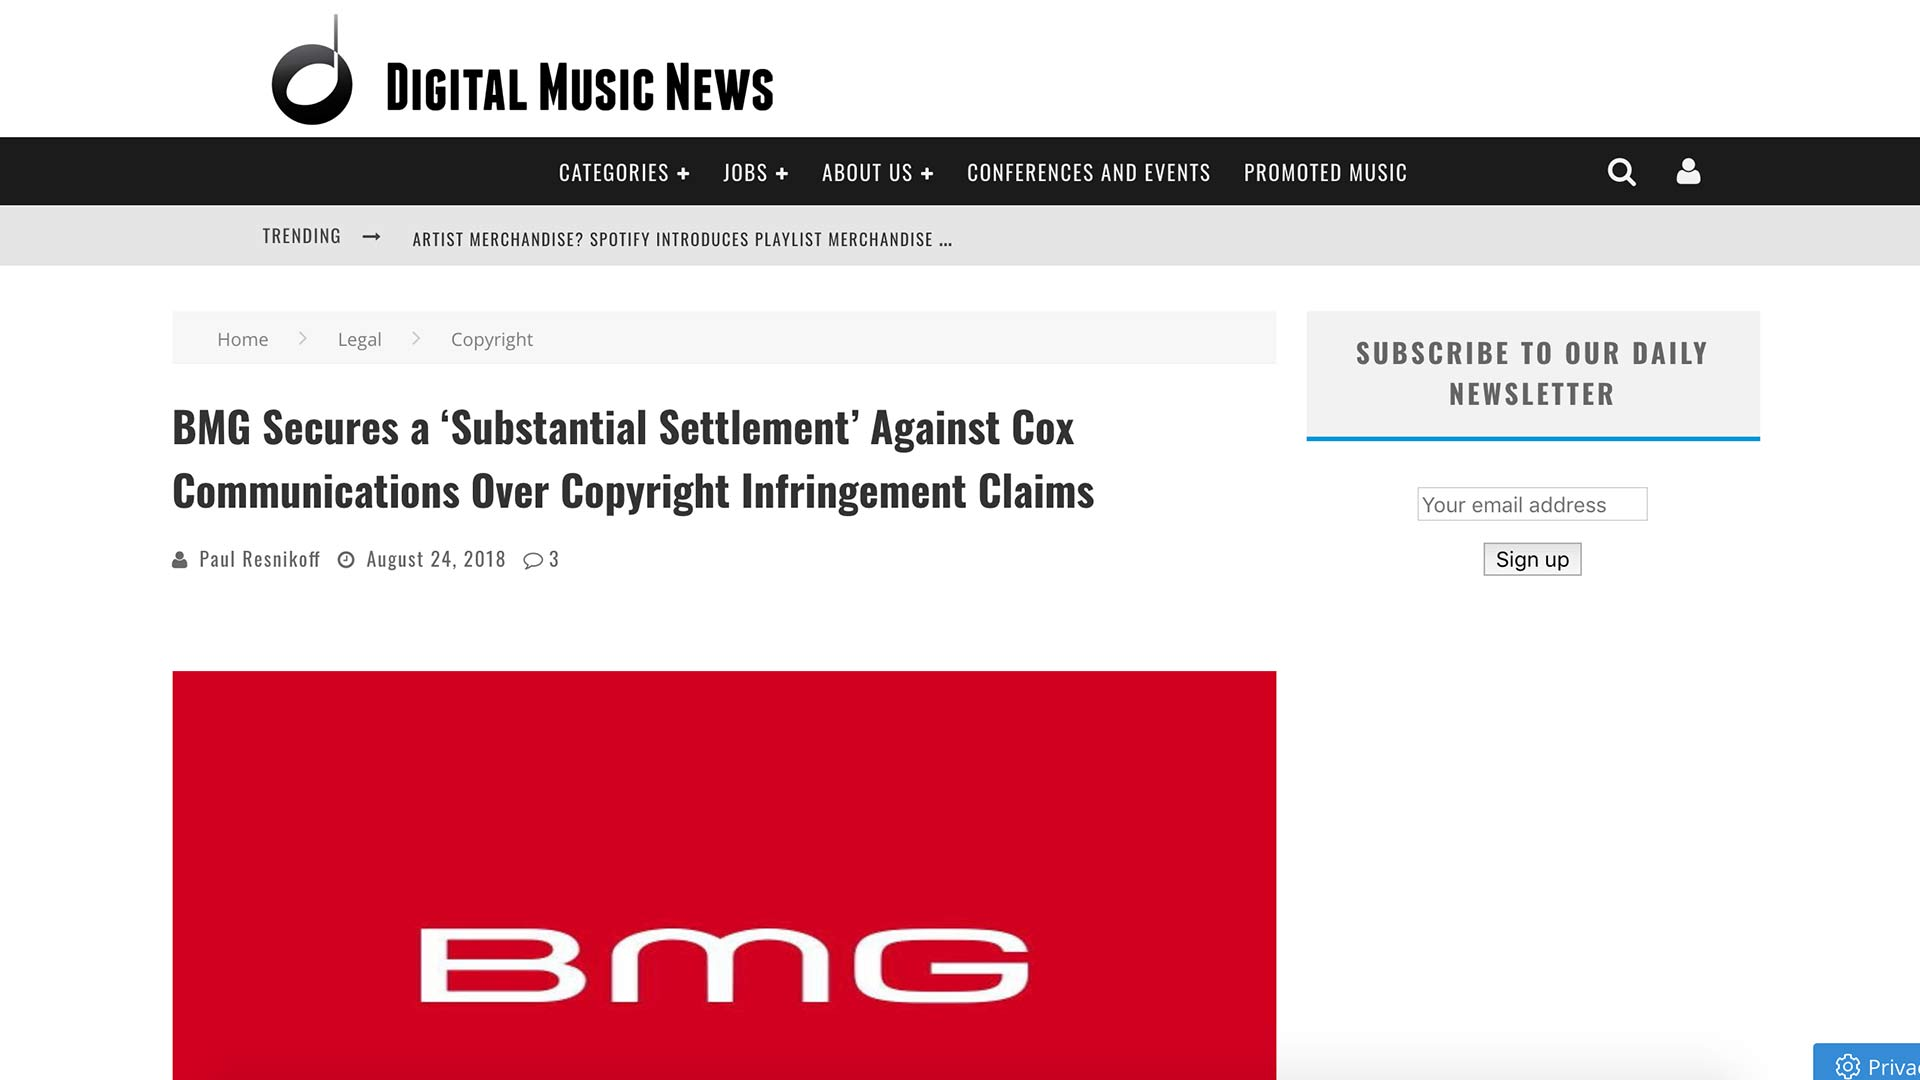 Fairness Rocks News BMG Secures a 'Substantial Settlement' Against Cox Communications Over Copyright Infringement Claims